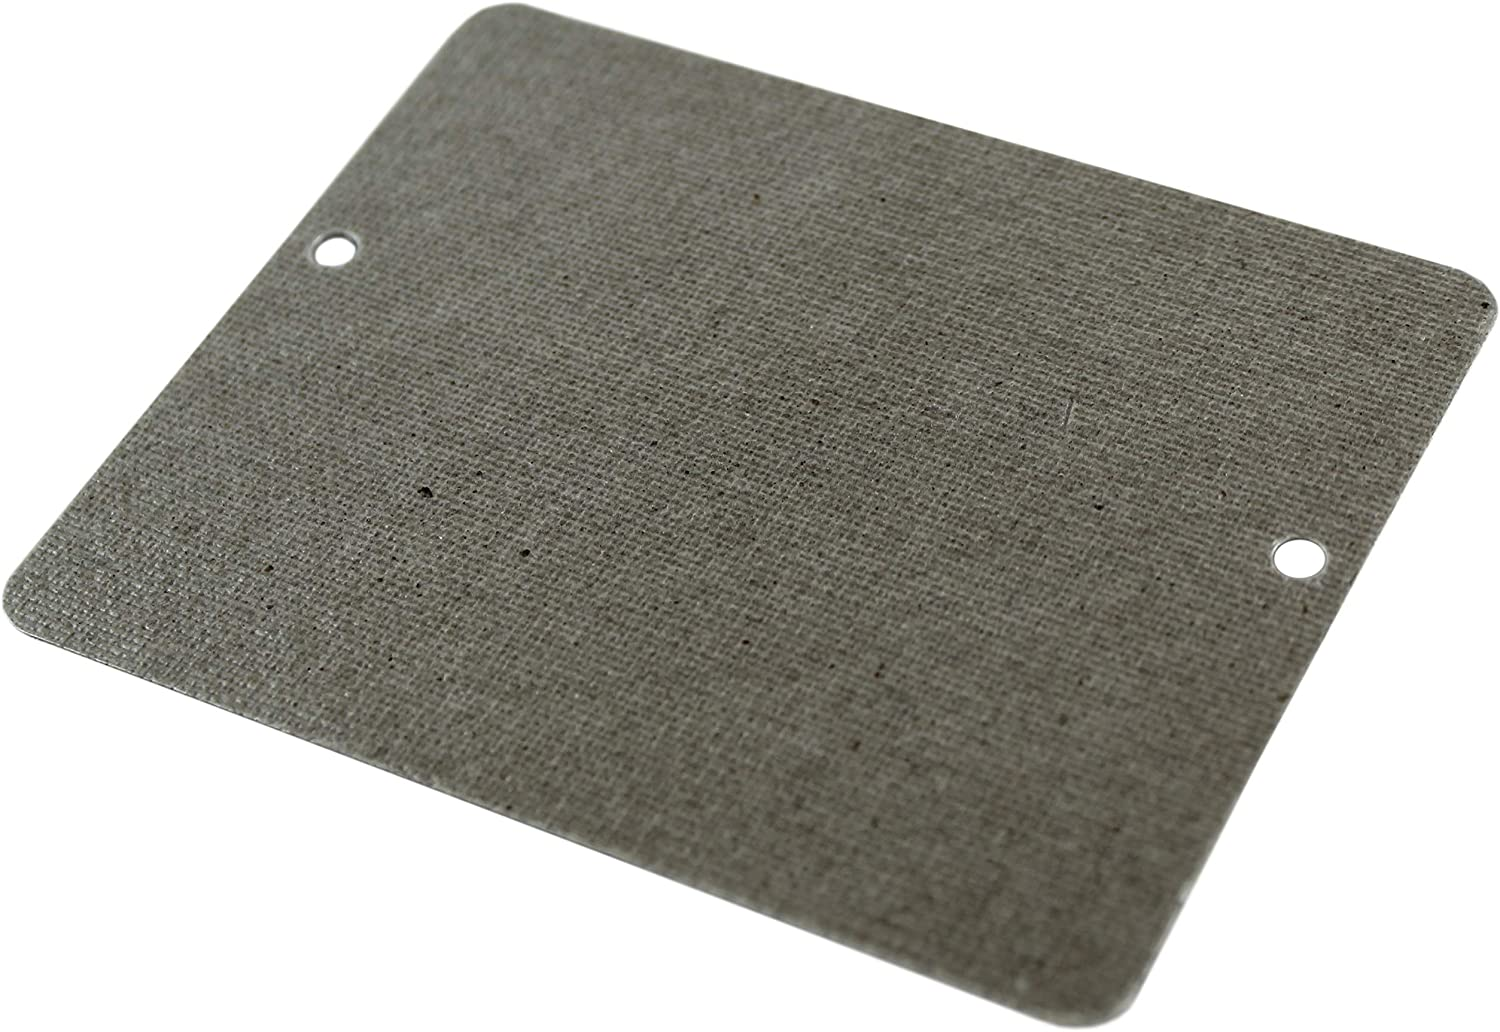 Supplying Demand WB34X21271 Microwave Mica Cover Shield Fits AP5791399 Compatible with GE